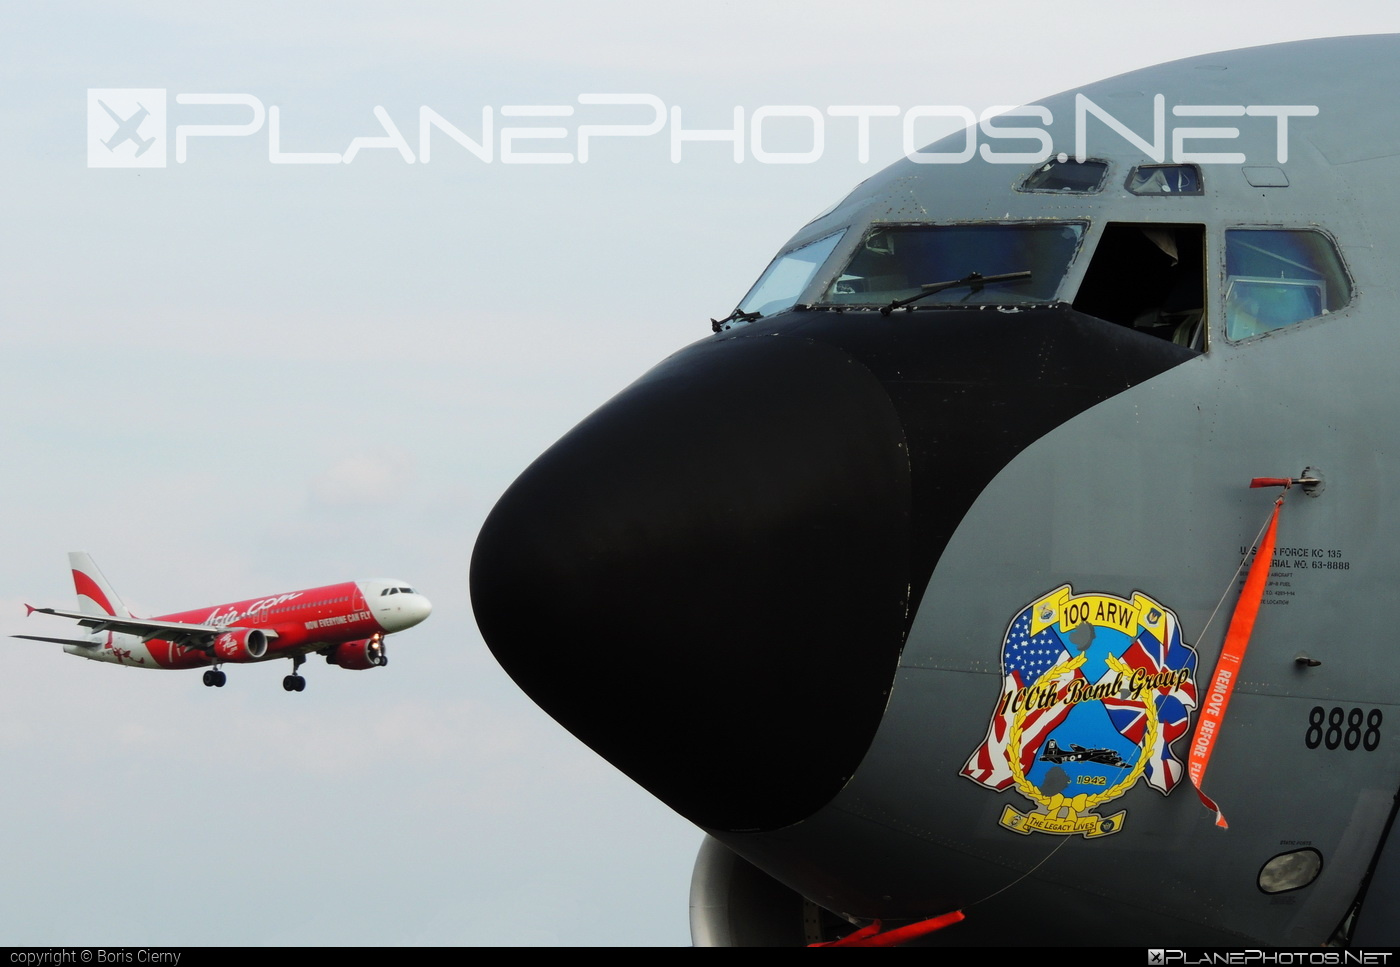 Boeing KC-135R Stratotanker - 63-8888 operated by US Air Force (USAF) #boeing #natodays #natodays2014 #usaf #usairforce